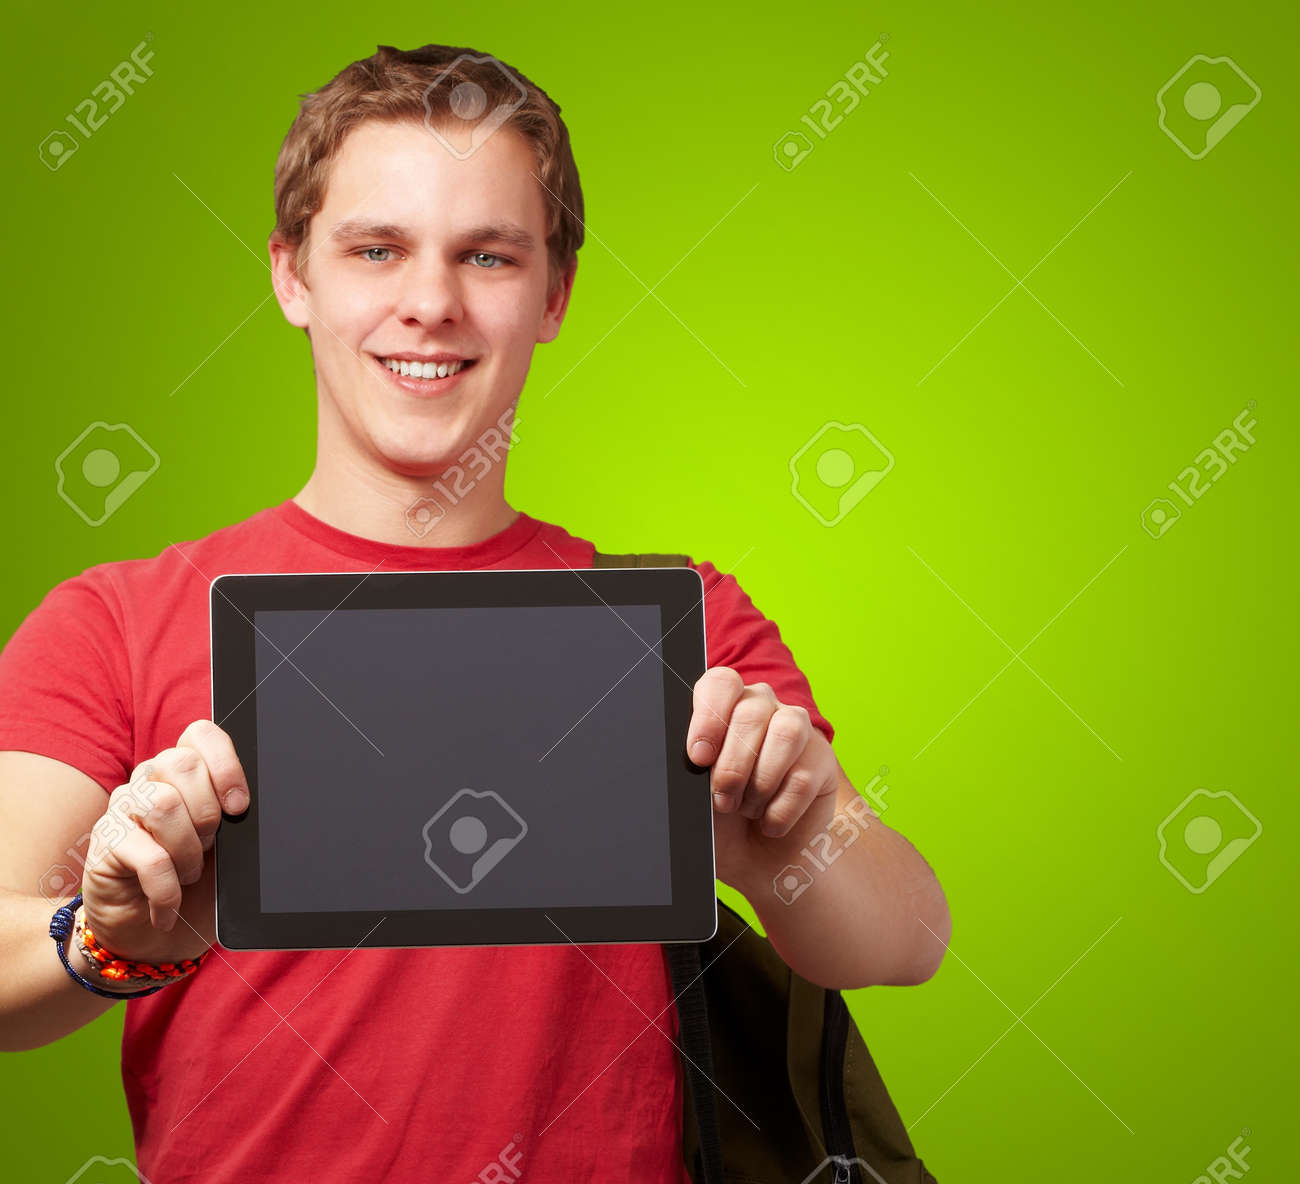 portrait of young man holding a digital tablet over green background Stock Photo - 12656543